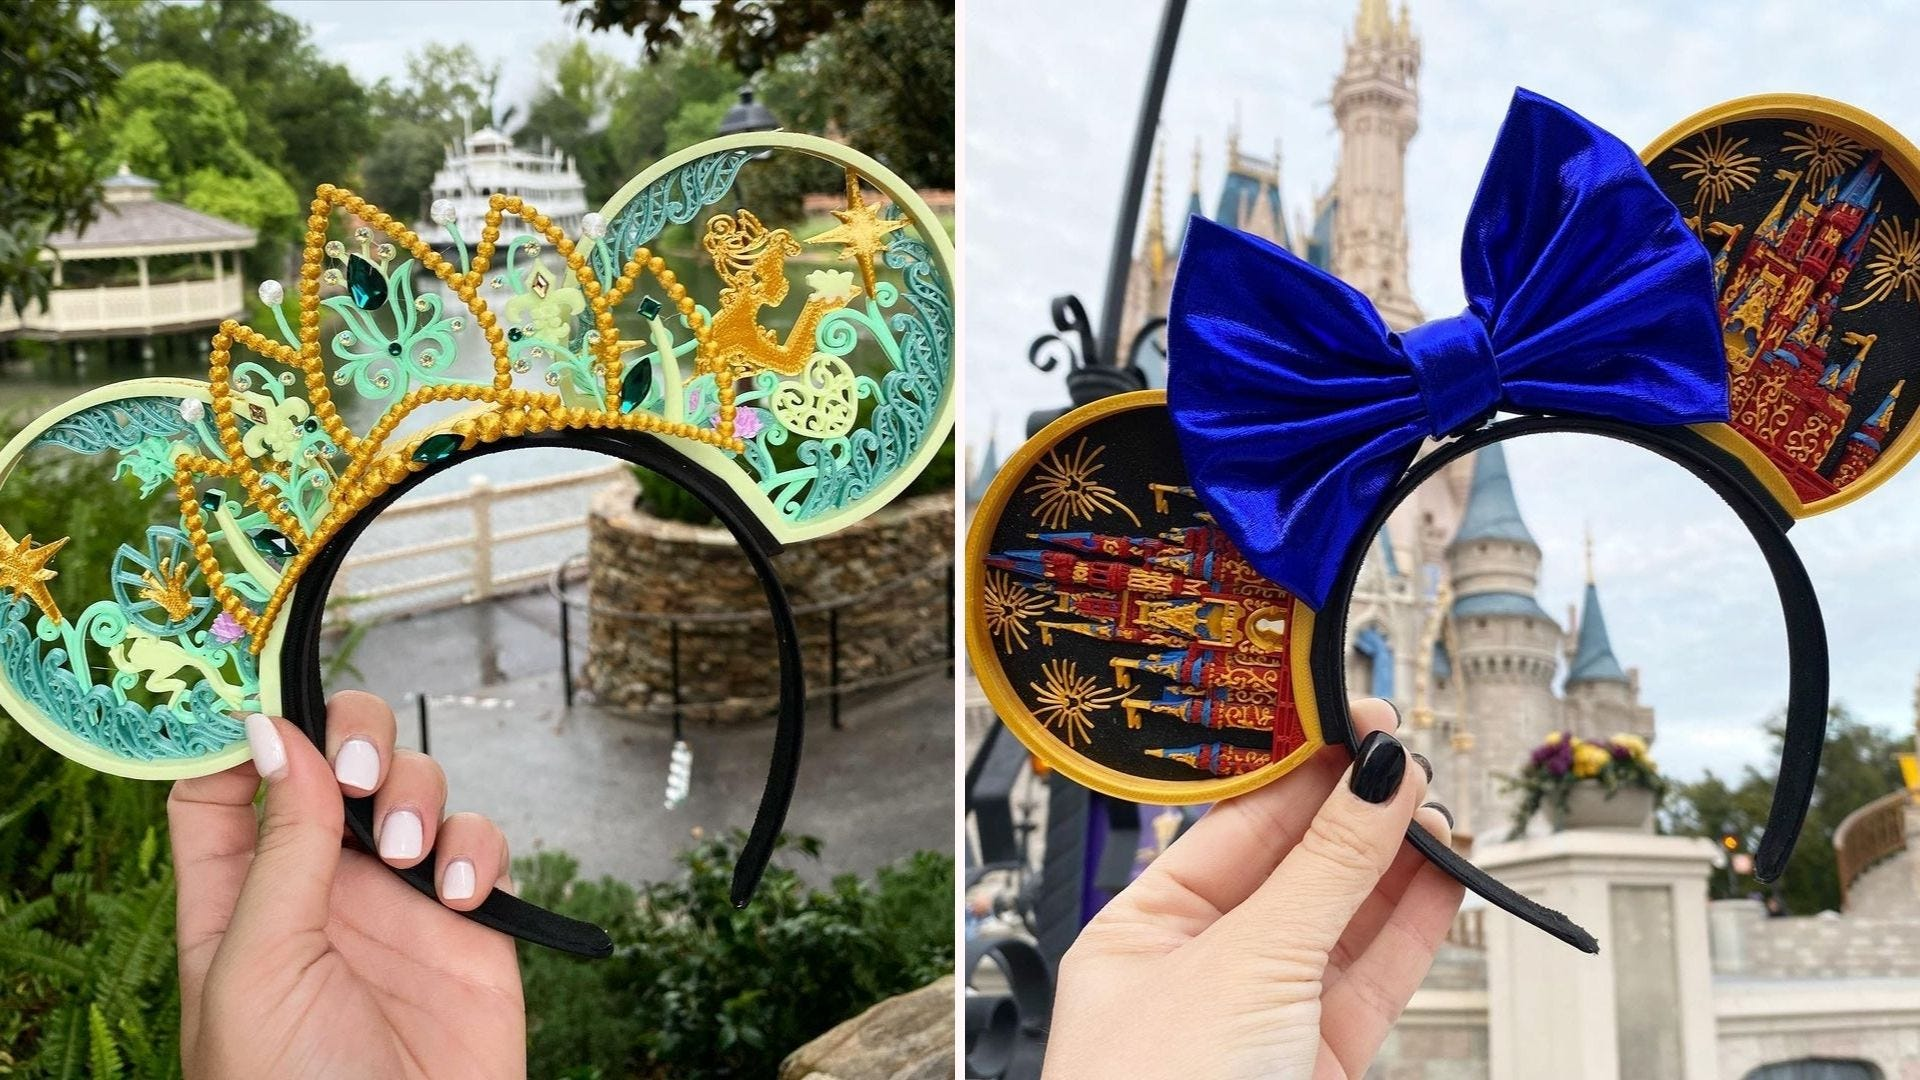 A green pair of Mickey Ears depicting Princess and the Frog scenes; a pair of ears with the Disney castle and a blue bow